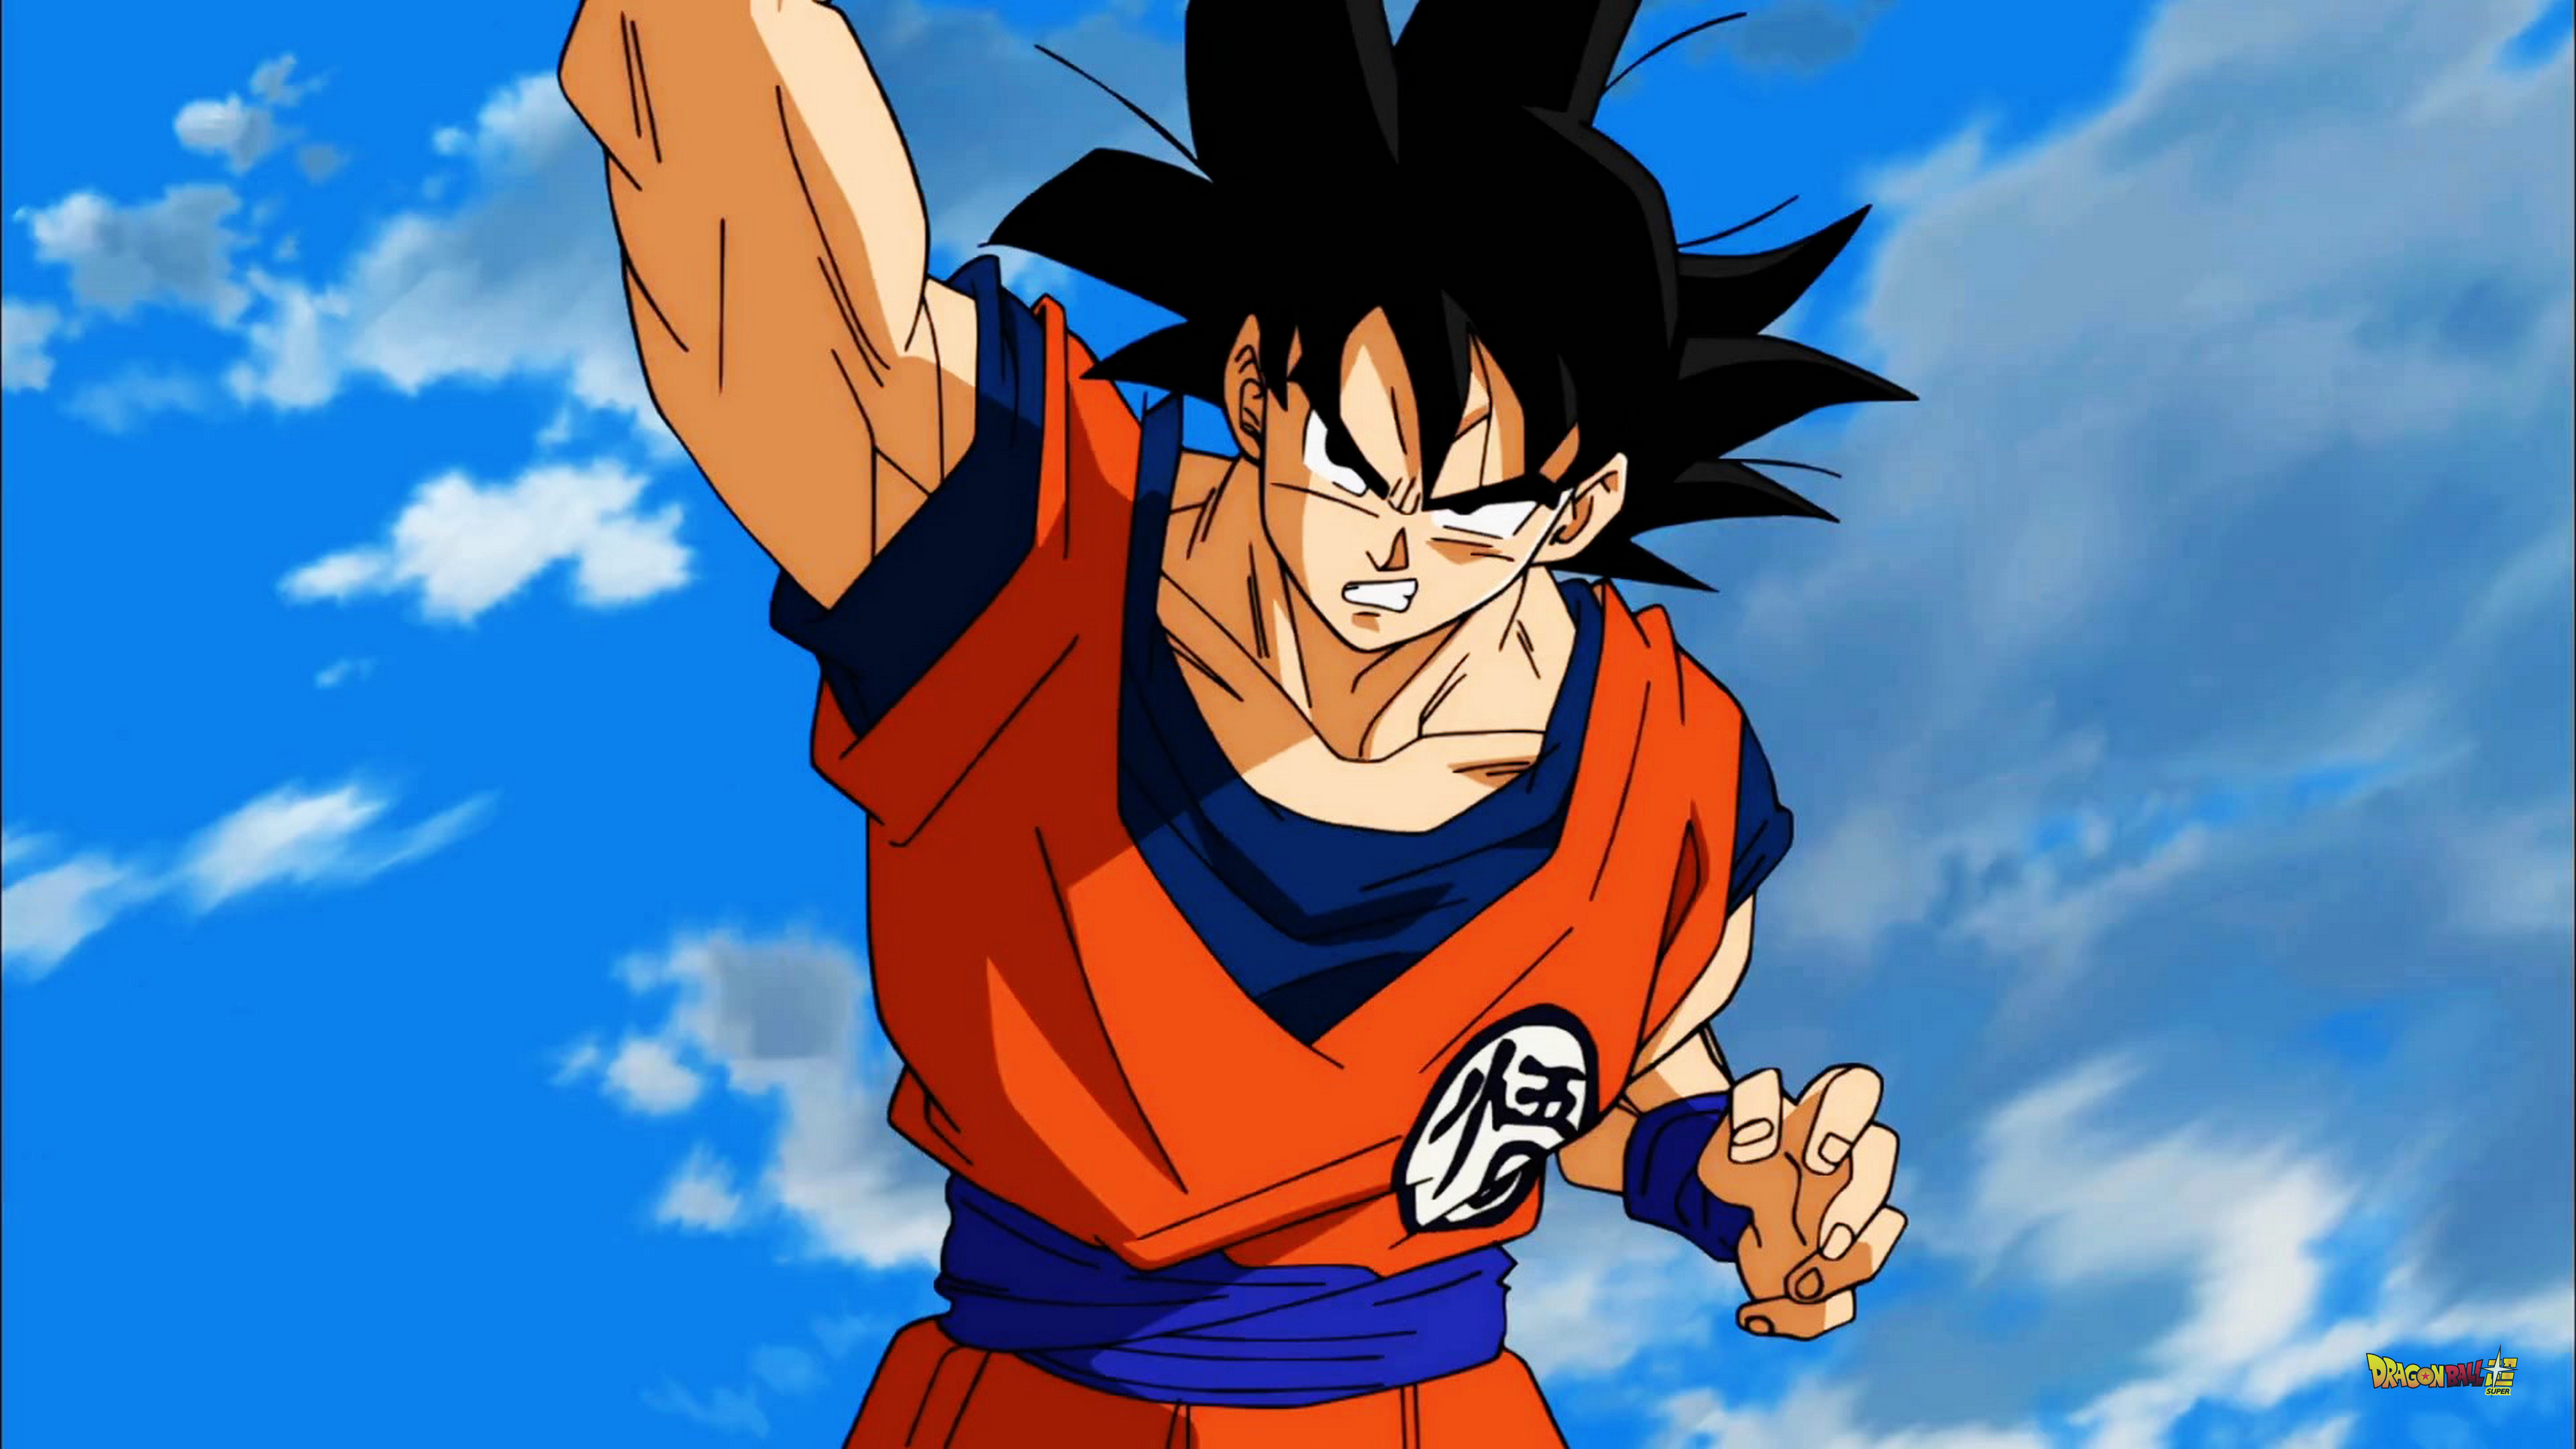 Dragon Ball Super Season 1 Episode 1 S01E01 4k uHD Wallpapers 02 Goku works in his radish field, but wants to go training and fighting.